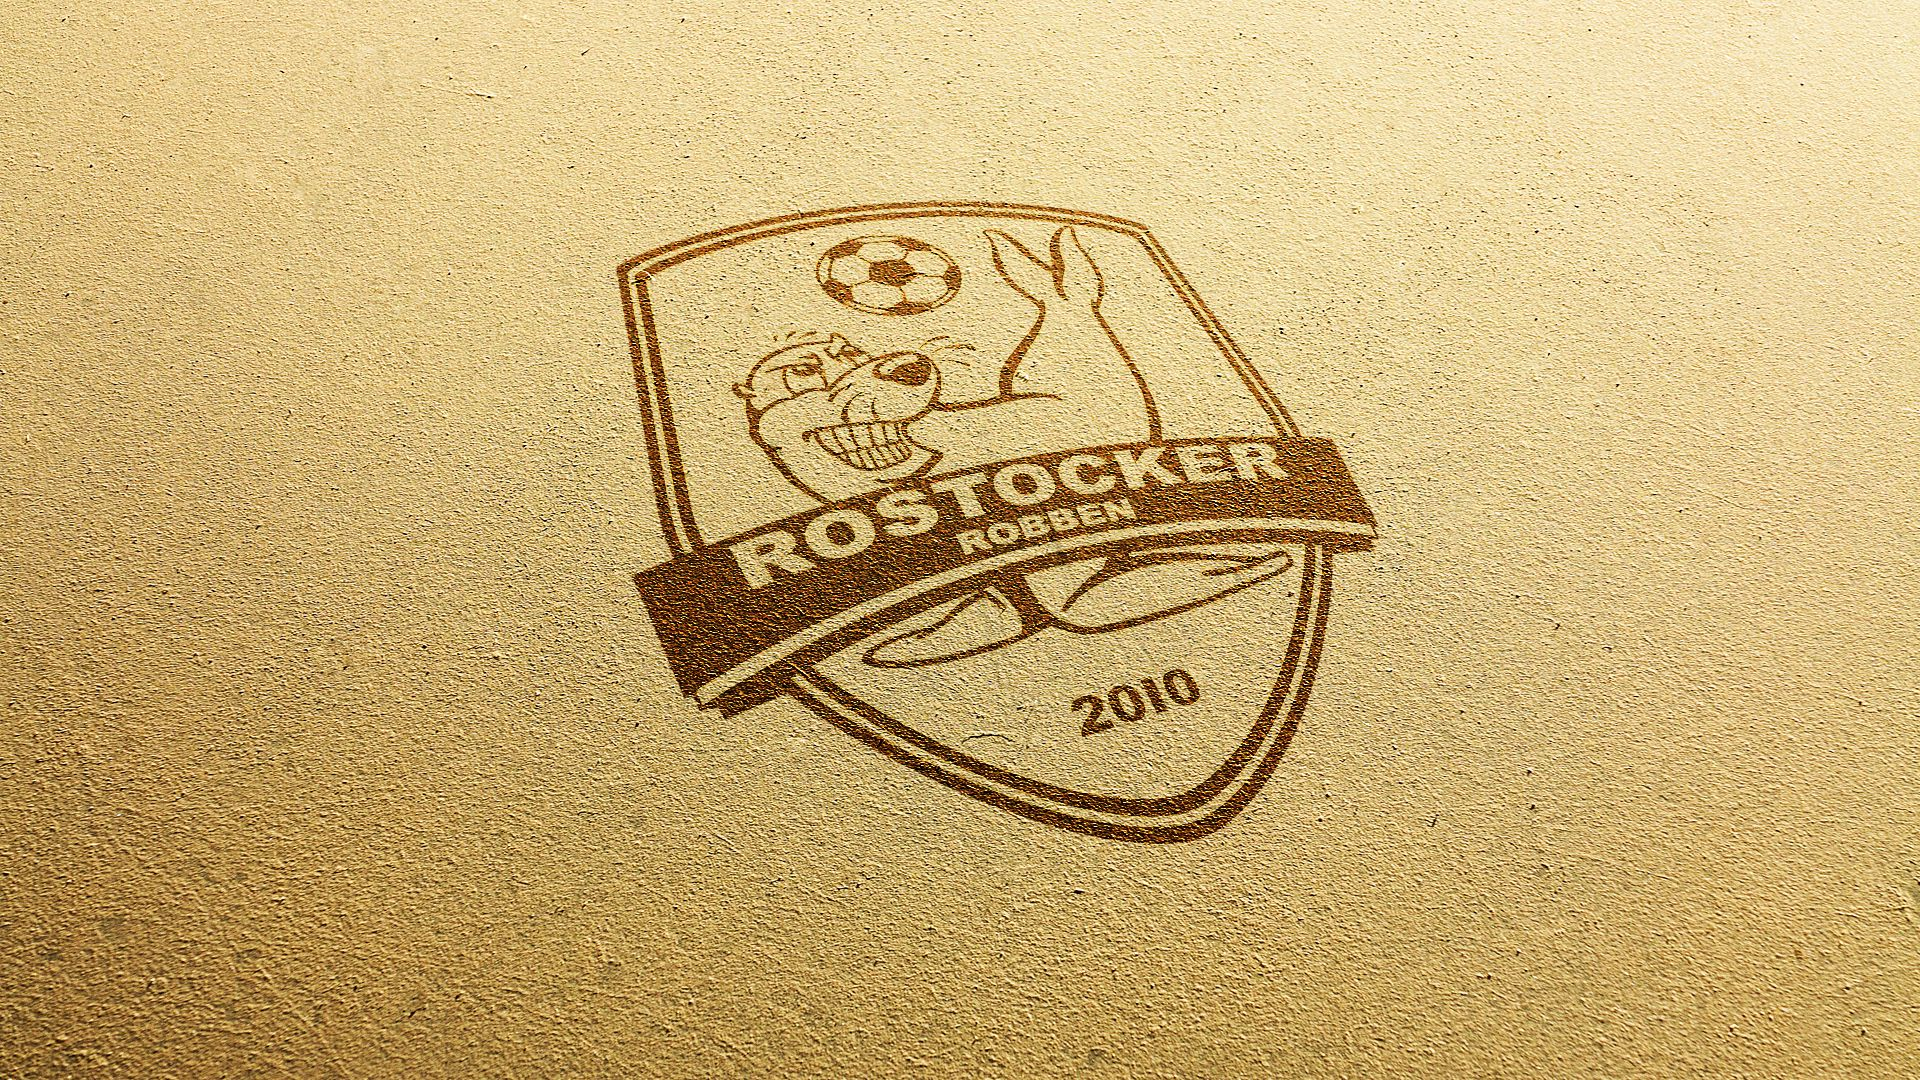 Rostocker Robben Free Wallpaper 2